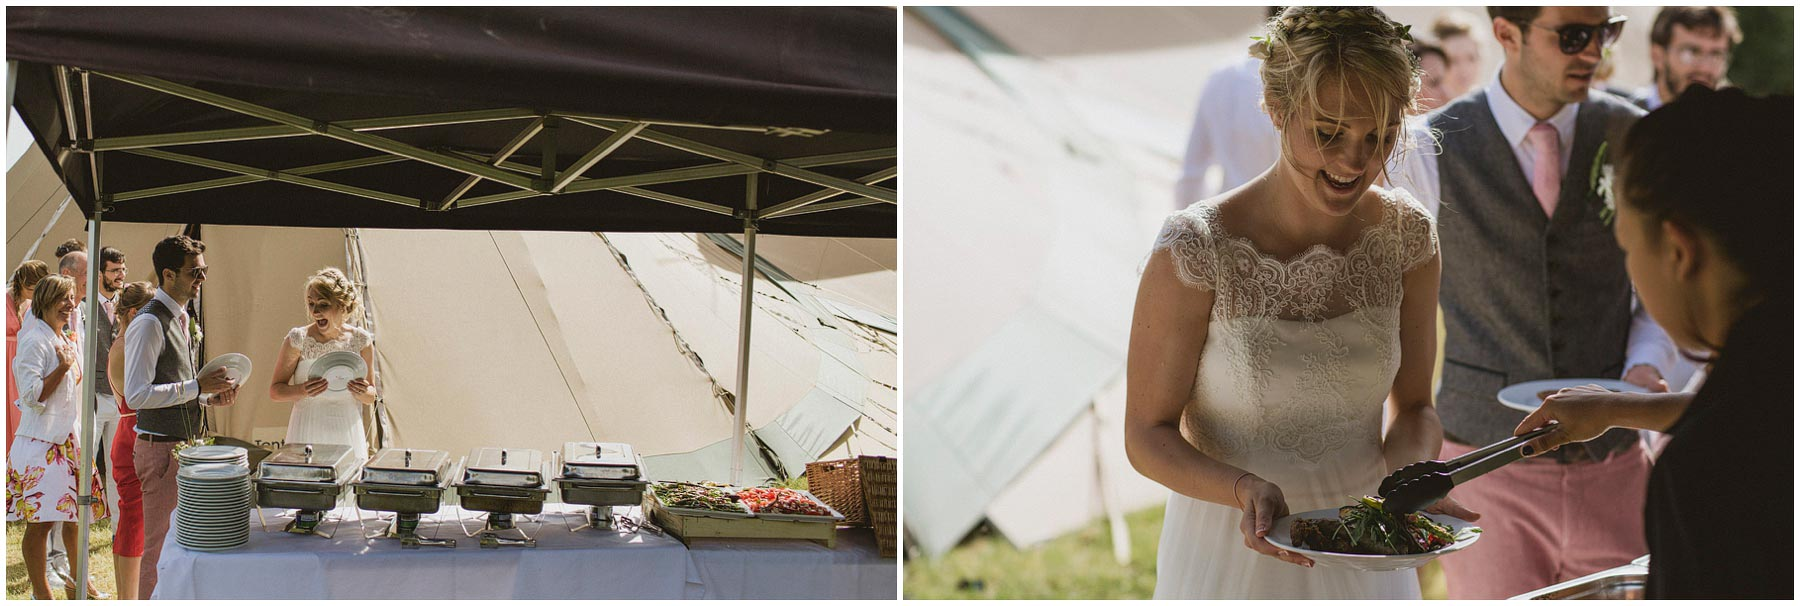 Kent-Festival-Tipi-wedding-photography_0110